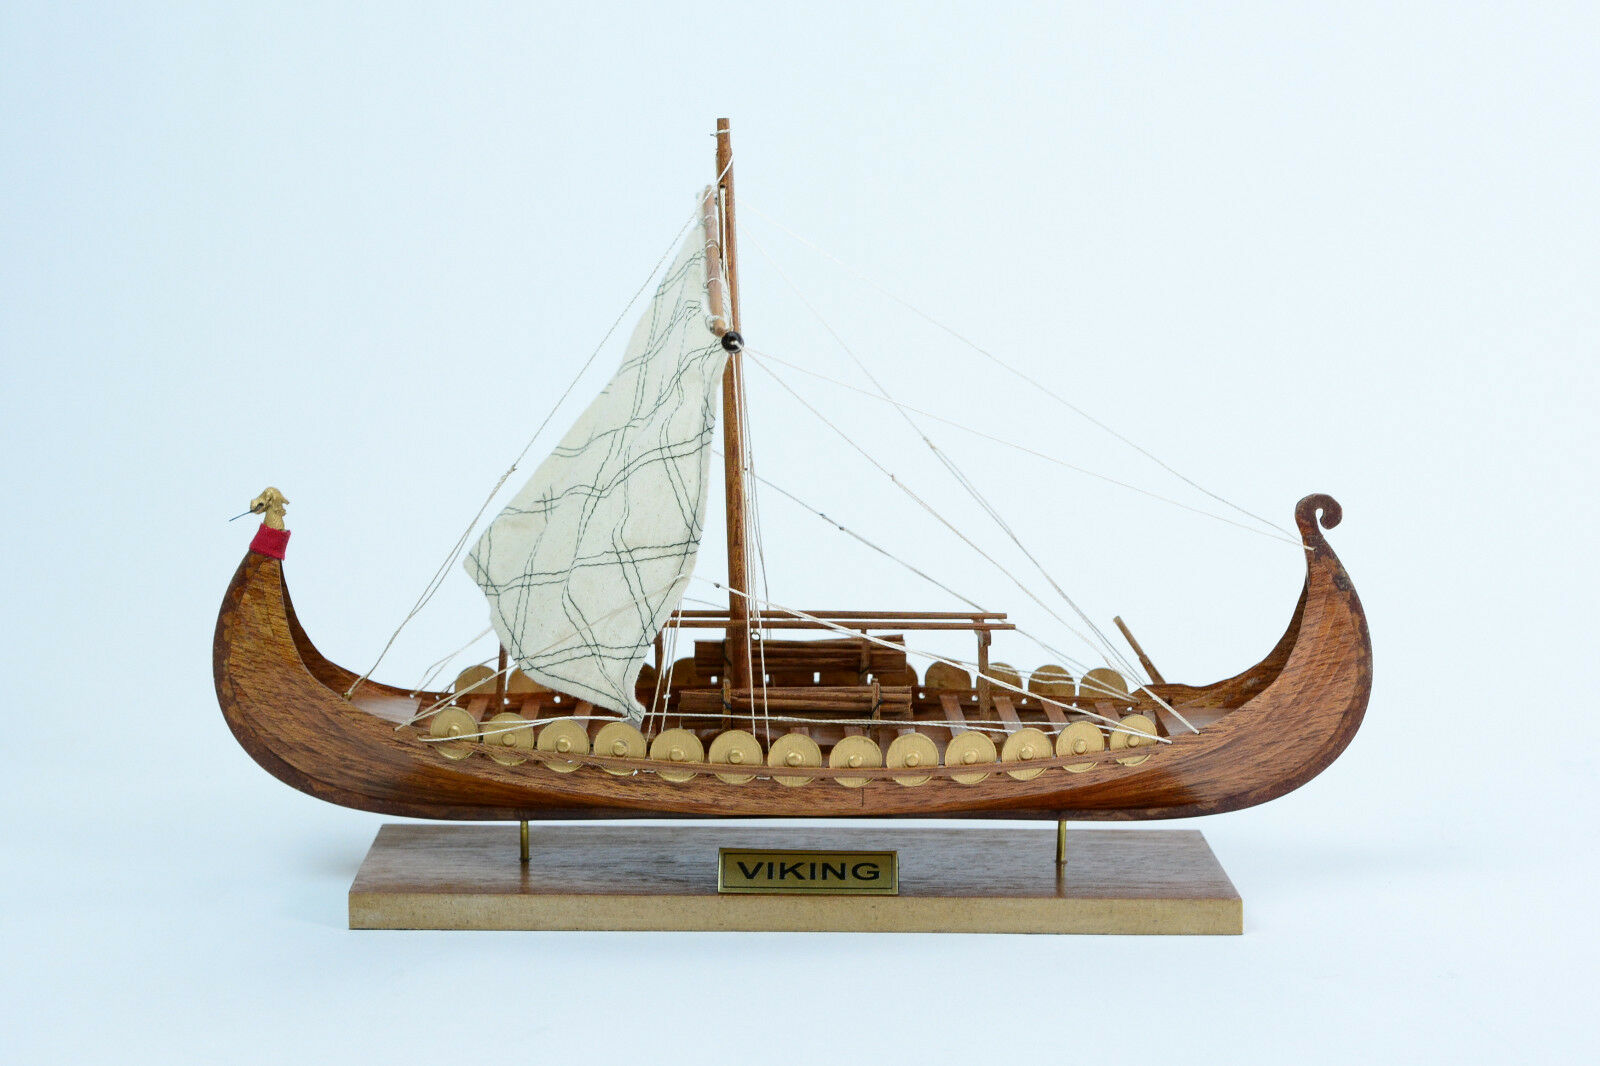 16 Built Clinker Handcrafted Viking Model Boat Wooden Owiu99d452795